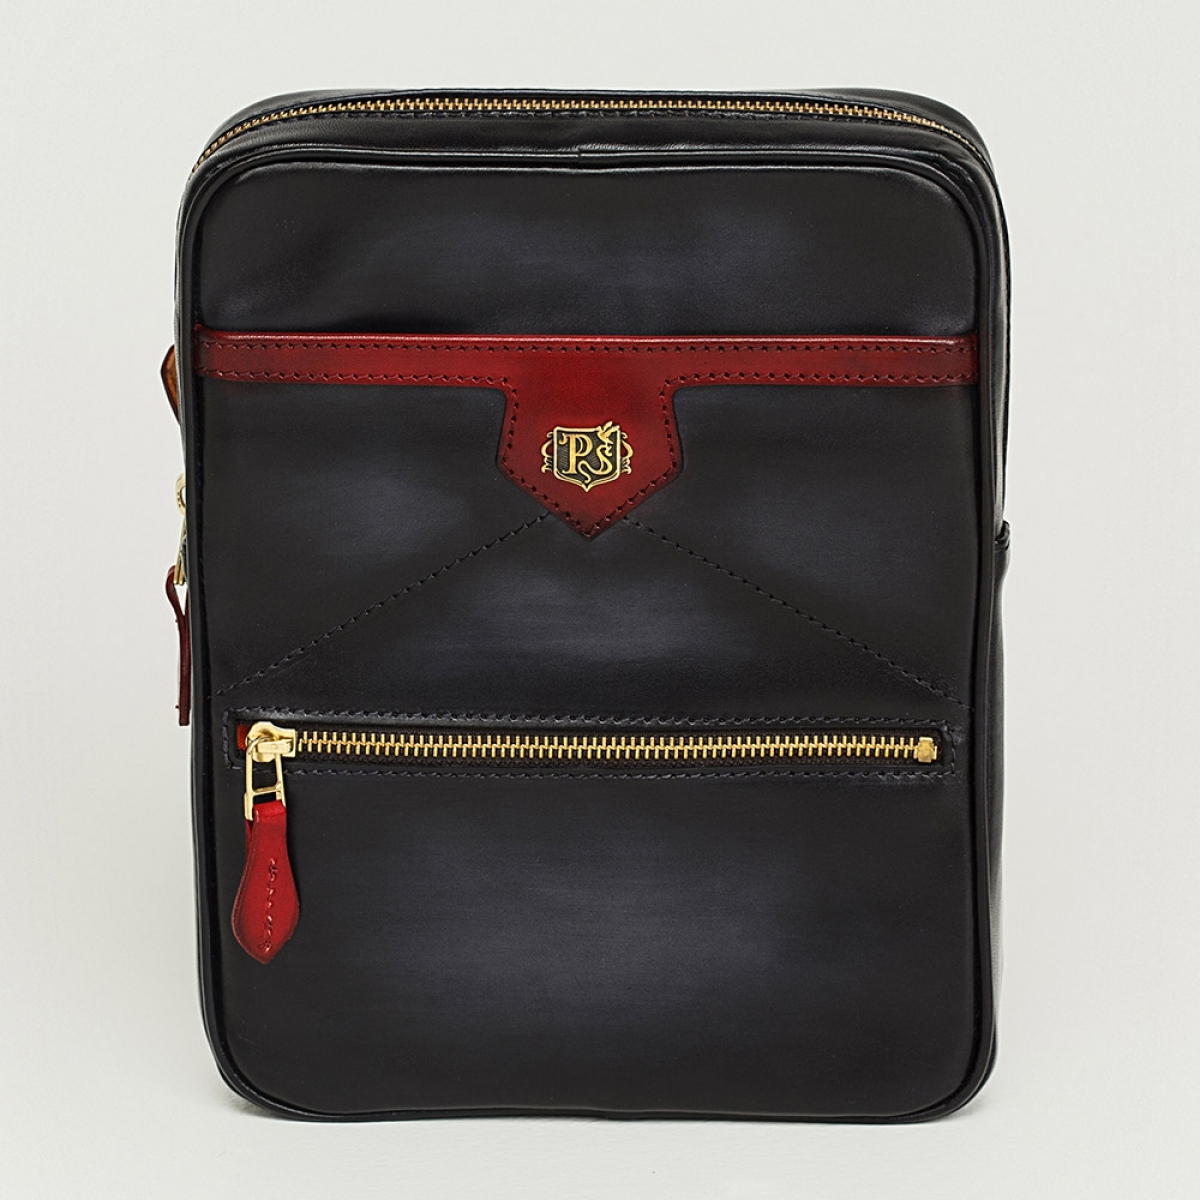 Crossbody bag MEZZO red currant & anthracite